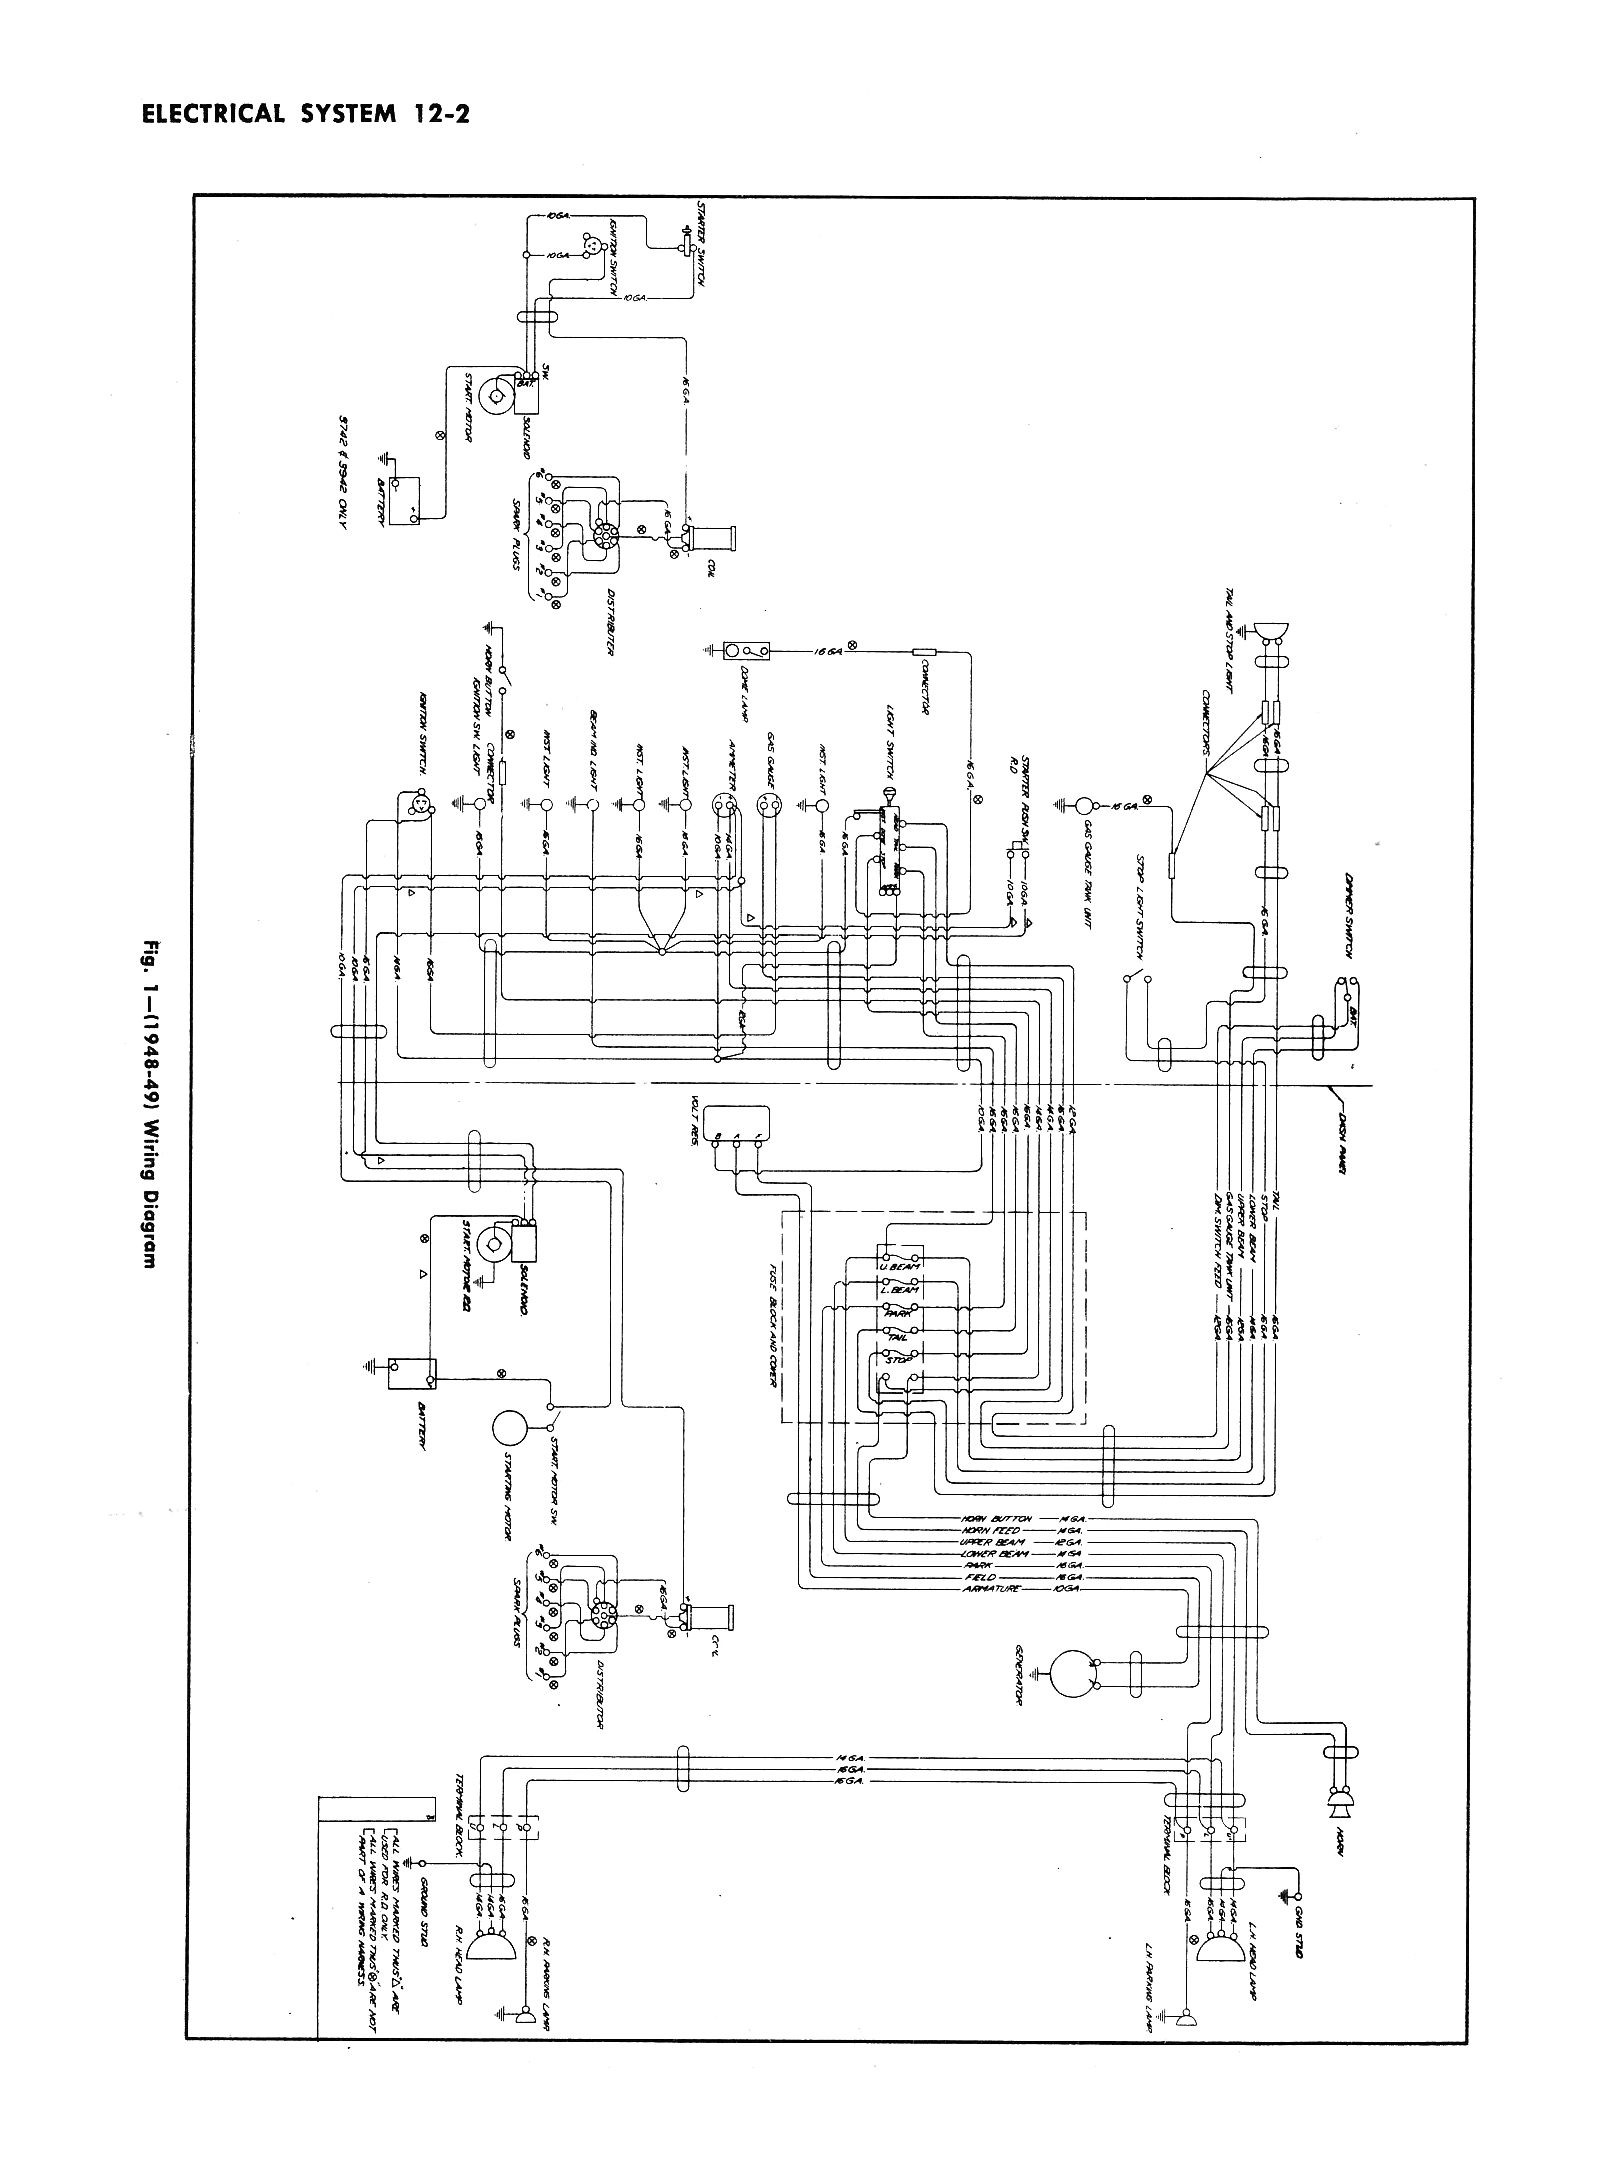 47 Ford Sedan Wiring Diagram additionally Wiring as well Kenmore Elite Dishwasher Parts Whirlpool Cabrio Washer Manual Gas Dryer Not Heating Refrigerator In Wiring Diagram 2 also 1934 Cadillac V8 7 Passenger Sedan Dealer Sales Folder Original furthermore 1995 Cadillac Deville And Concours Eldorado Seville Repair Shop Manual P11298. on 1942 cadillac sedan